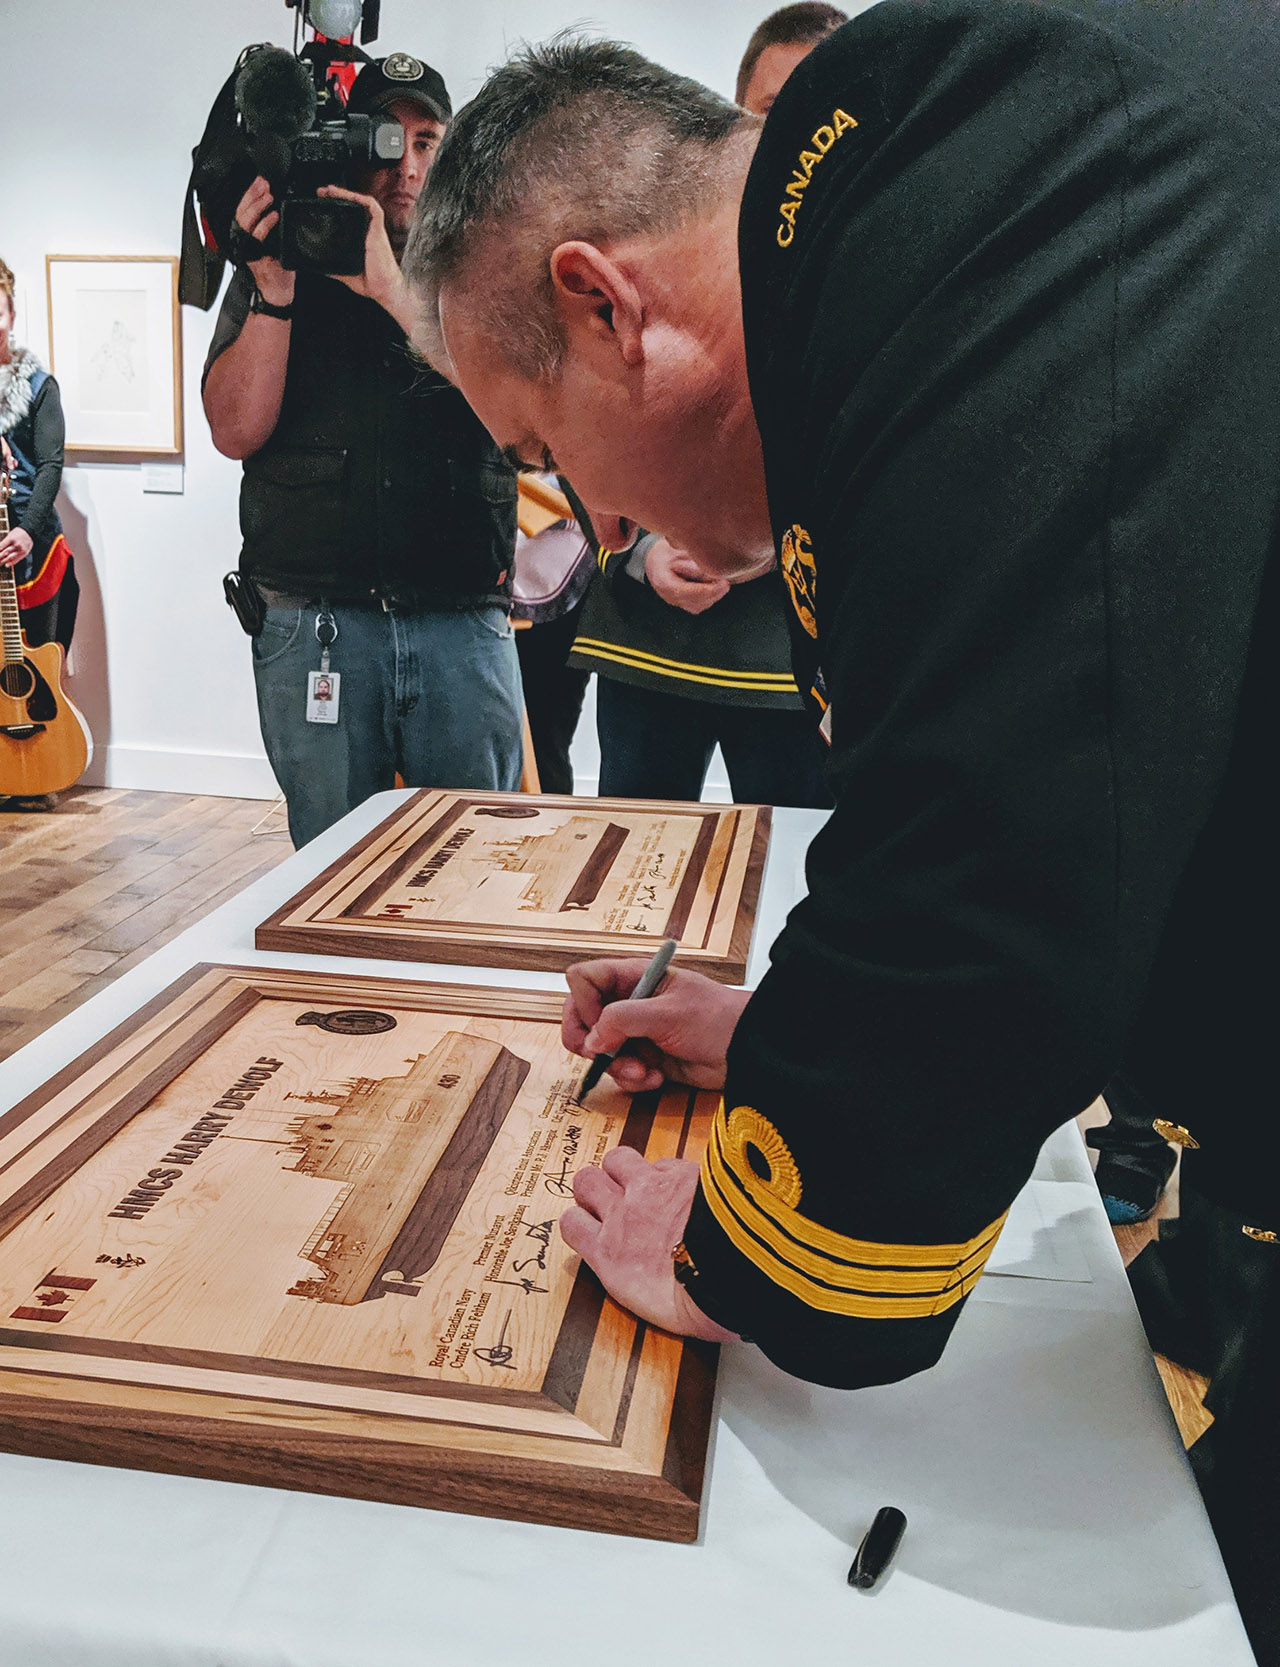 Commanding Officer, Commander Corey Gleason signing ceremonial plaques which formally recognize the affiliation of Her Majesty's Canadian Ship Harry DeWolf and the Qikiqtani region of Nunavut.